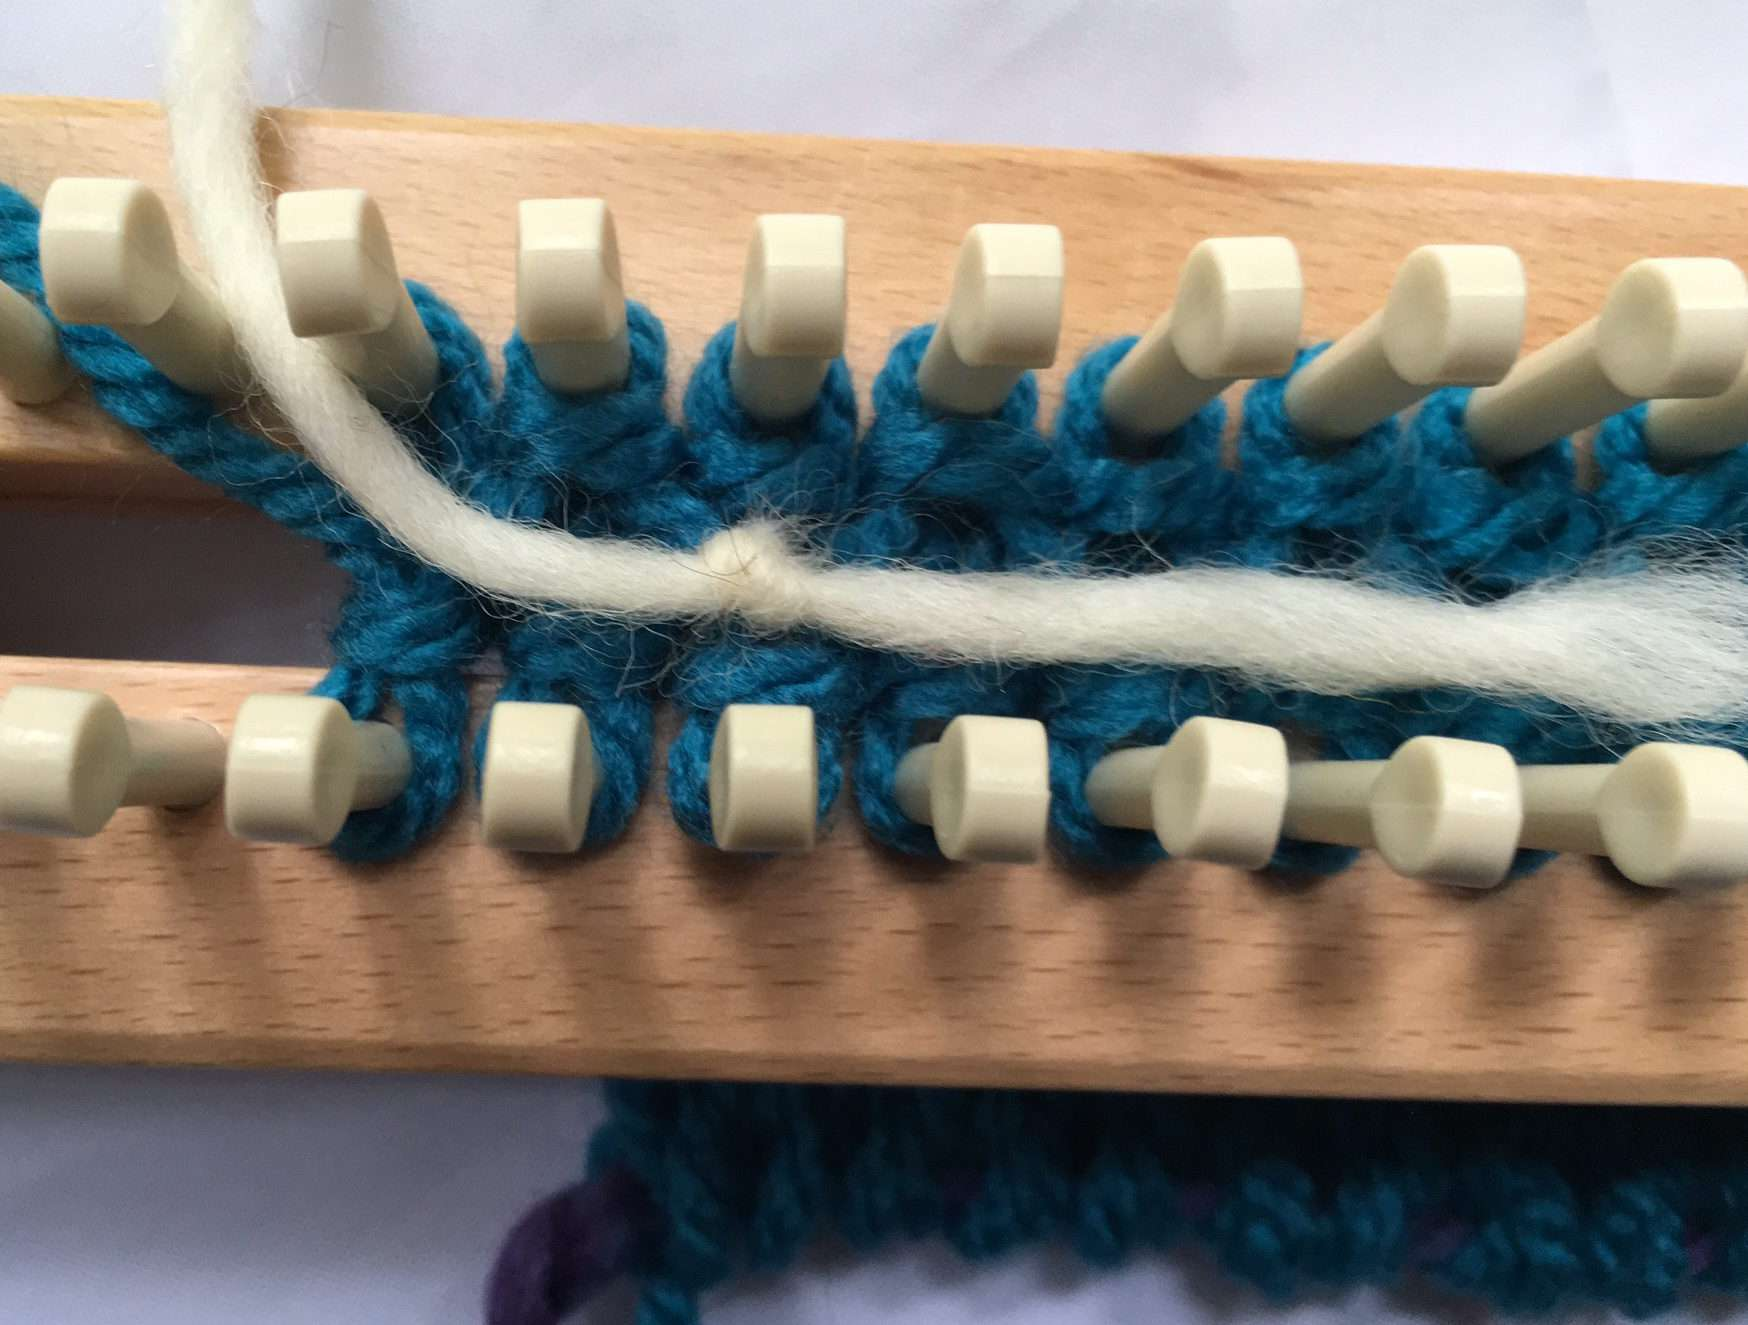 tie and lay yarn down